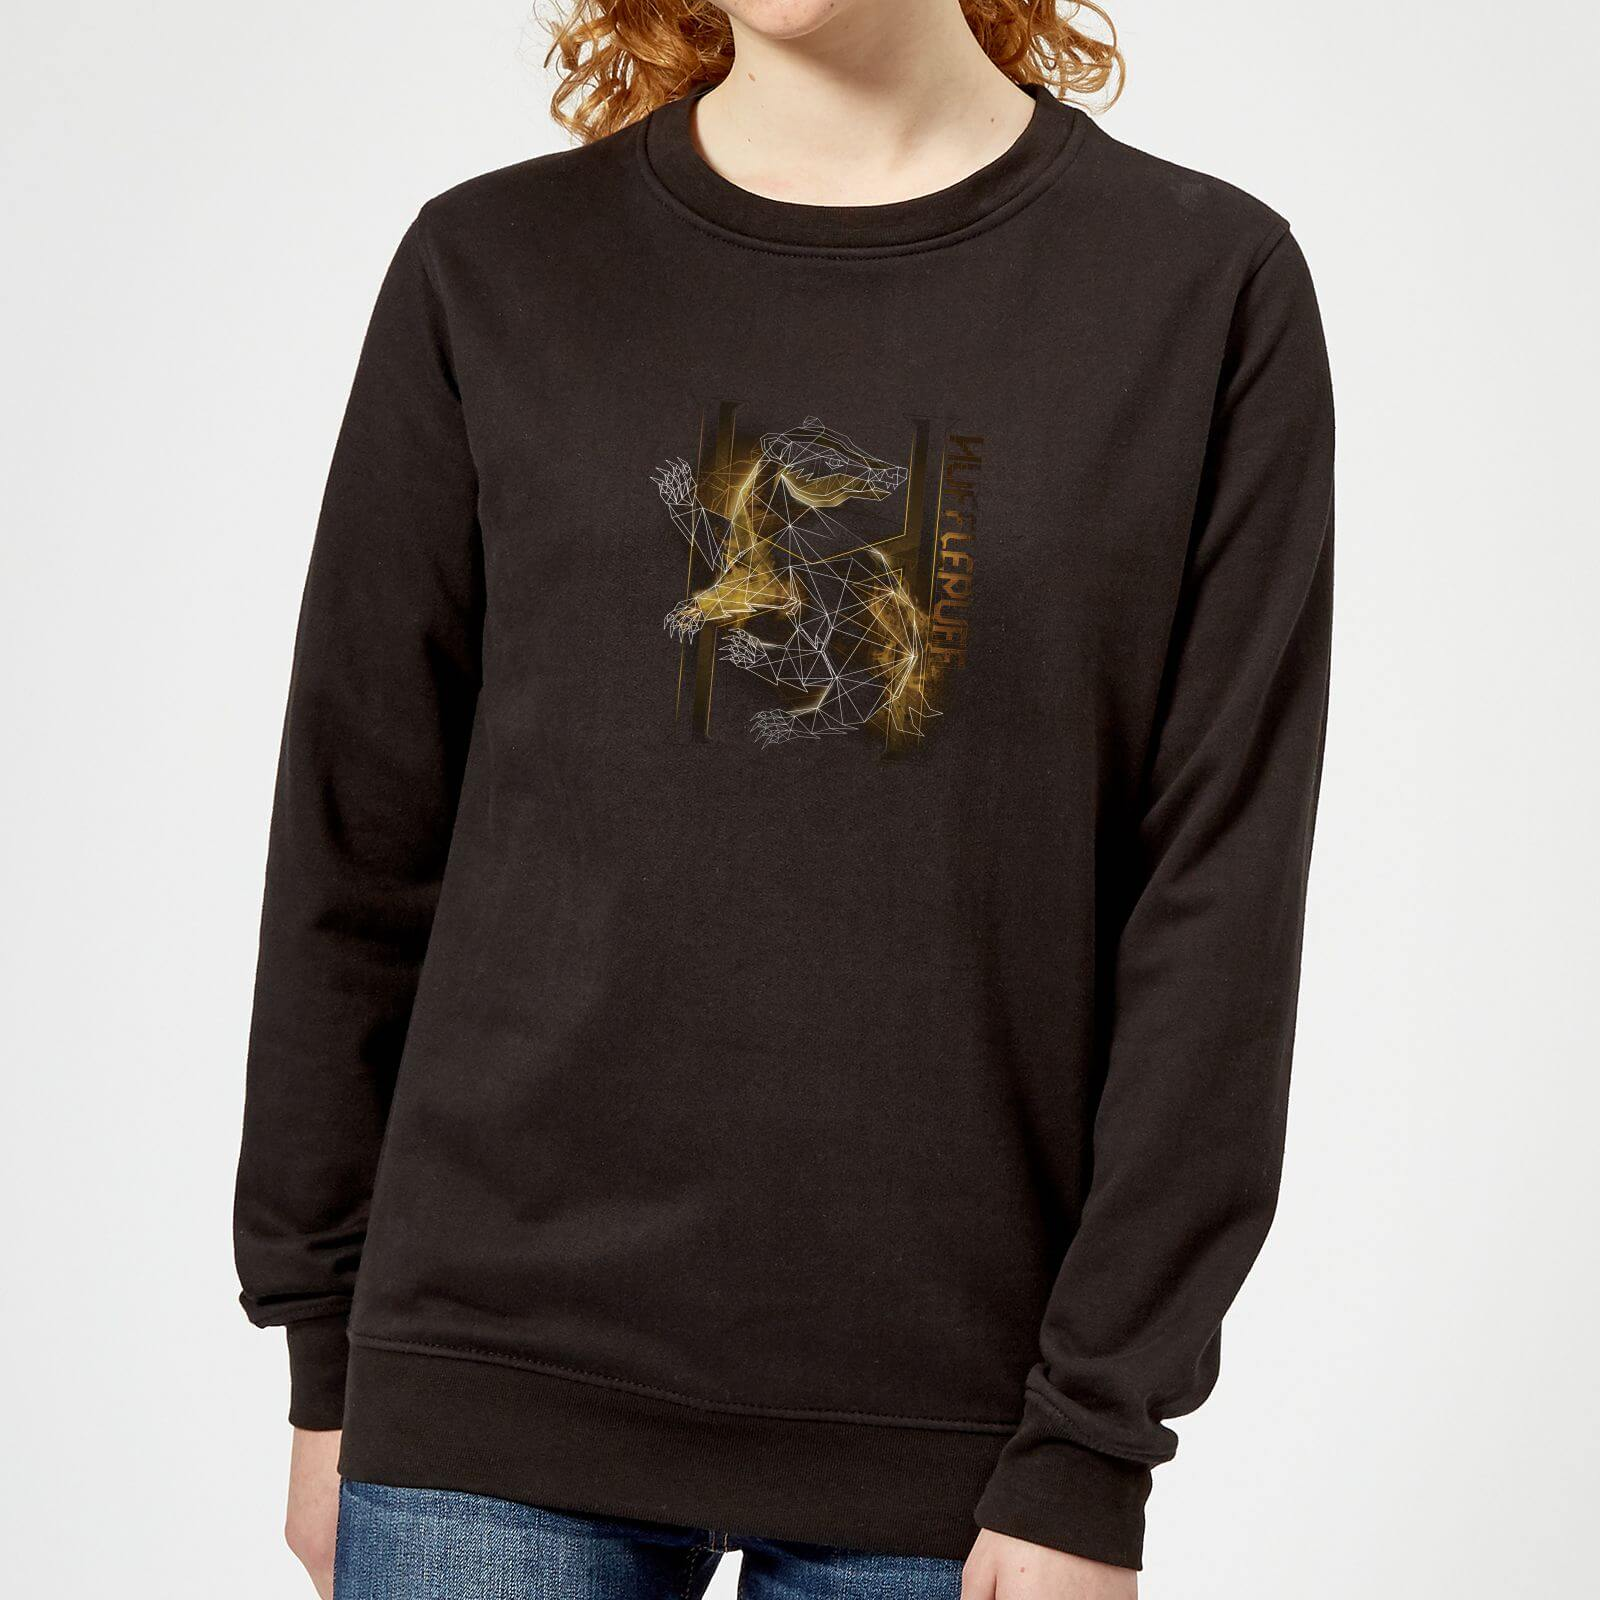 Harry Potter Hufflepuff Geometric Women's Sweatshirt - Black - XL - Negro de Harry Potter